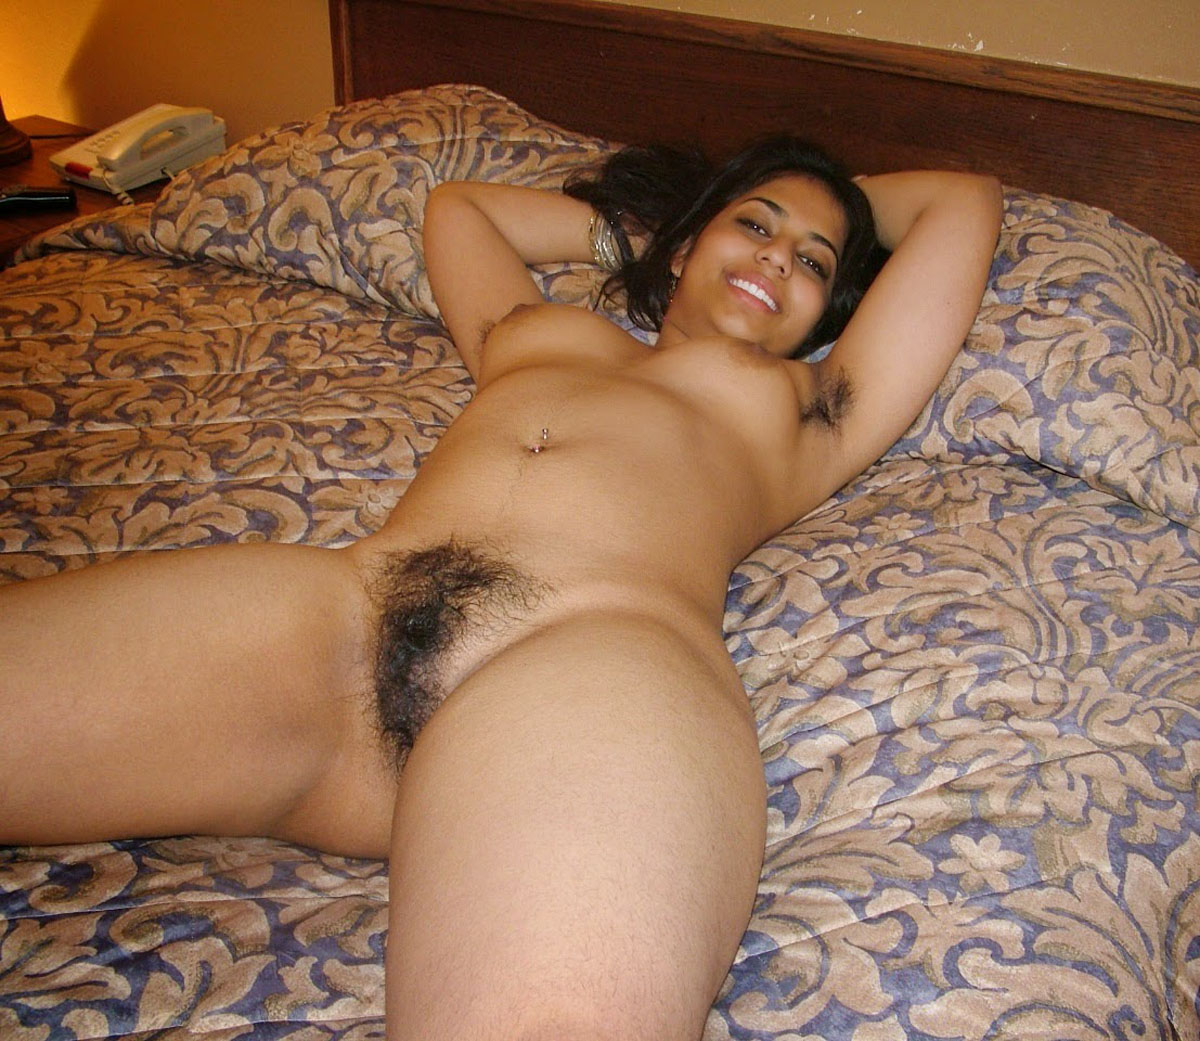 old indian women nude pics